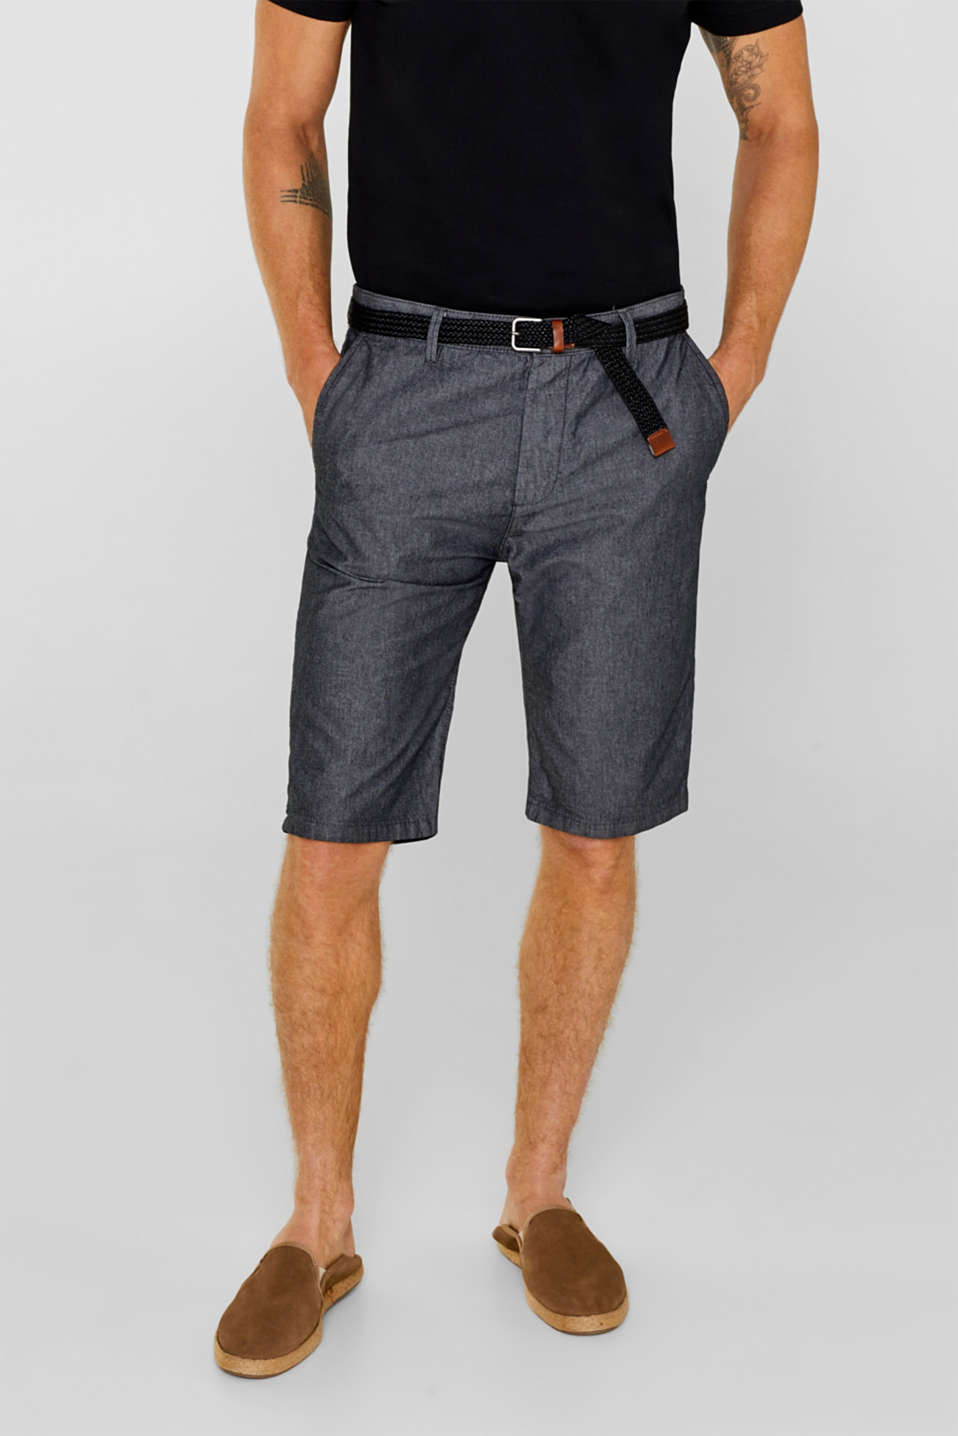 Esprit - CHAMBRAY shorts with a belt, 100% cotton